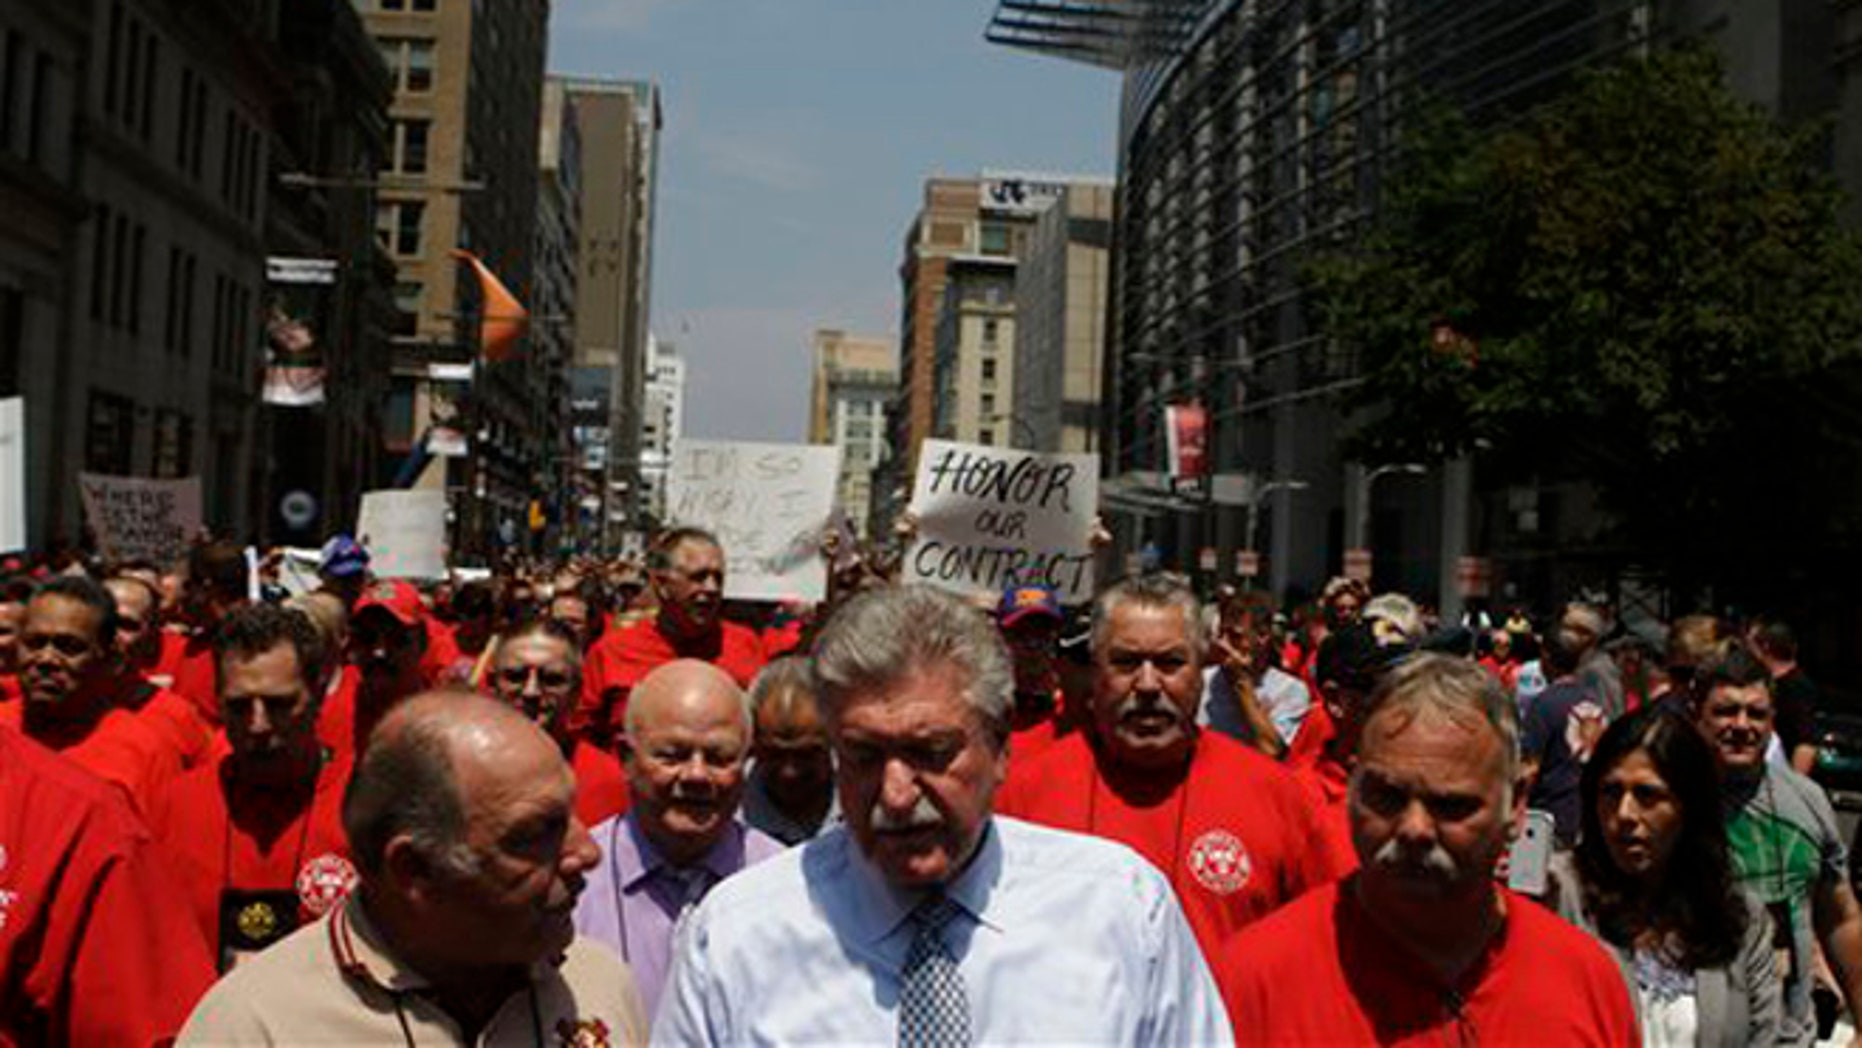 July 26, 2012: Firefighters assemble with Harold Schaitberger of the International Association of Fire Fighters and march to City Hall in Philadelphia.